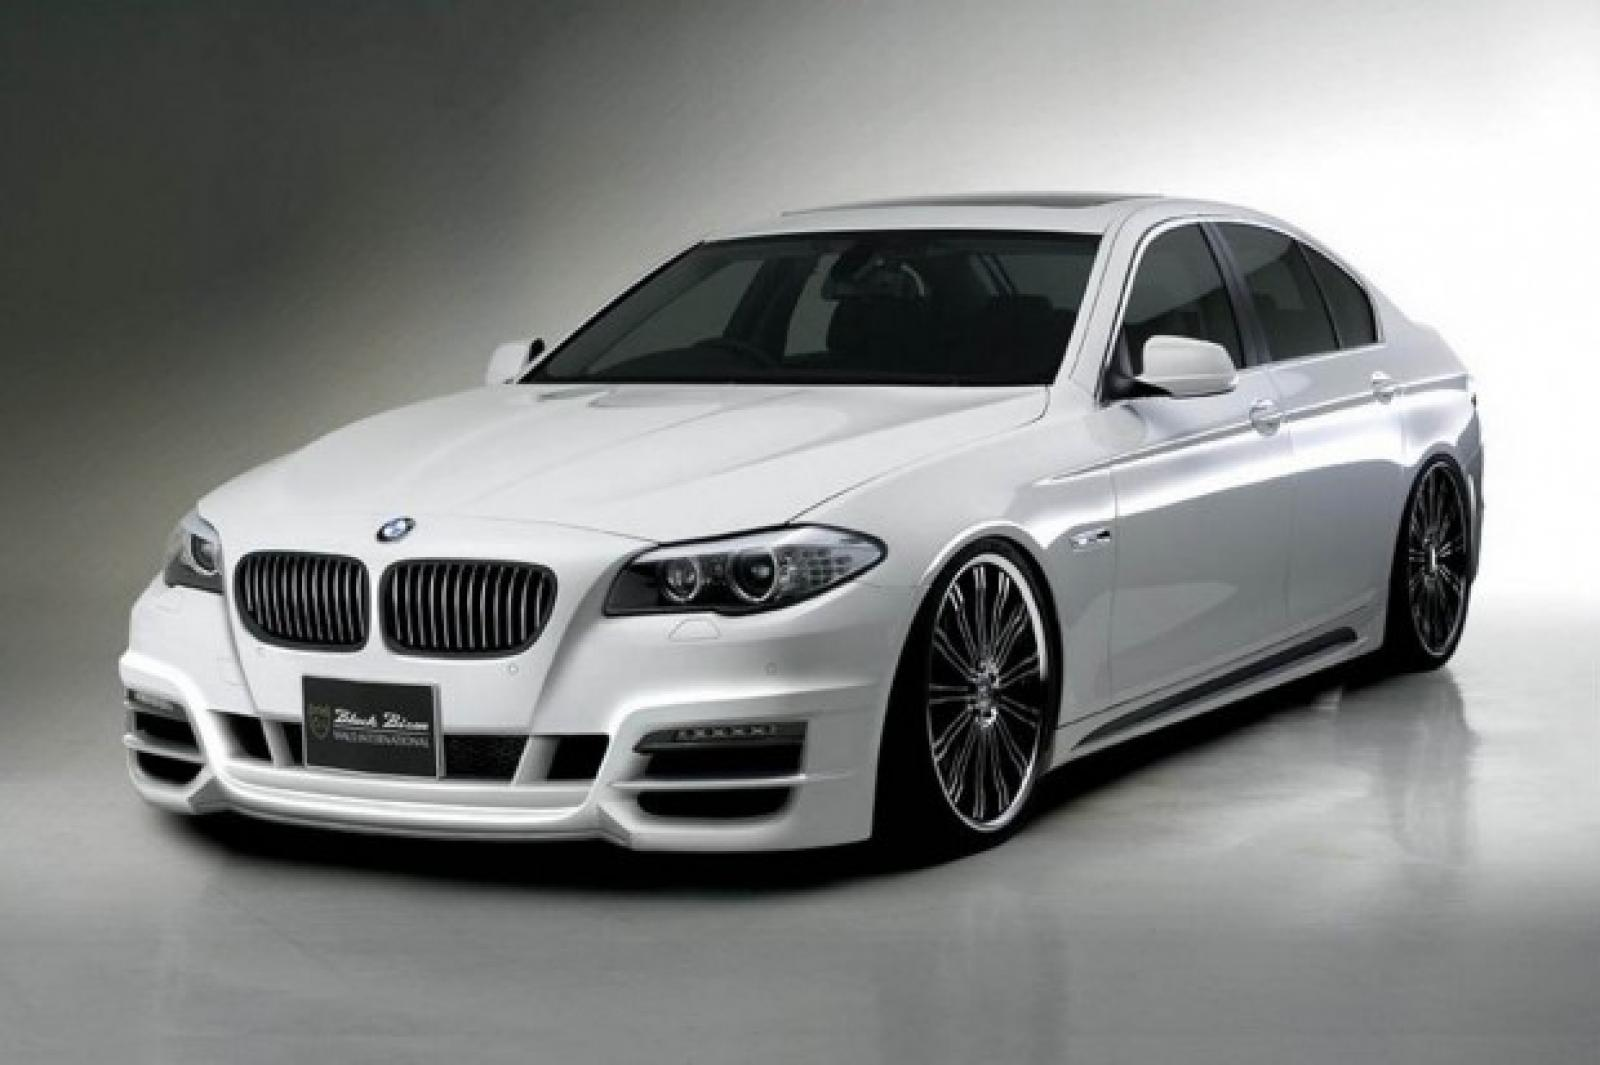 2015 bmw 5 series information and photos zombiedrive. Black Bedroom Furniture Sets. Home Design Ideas